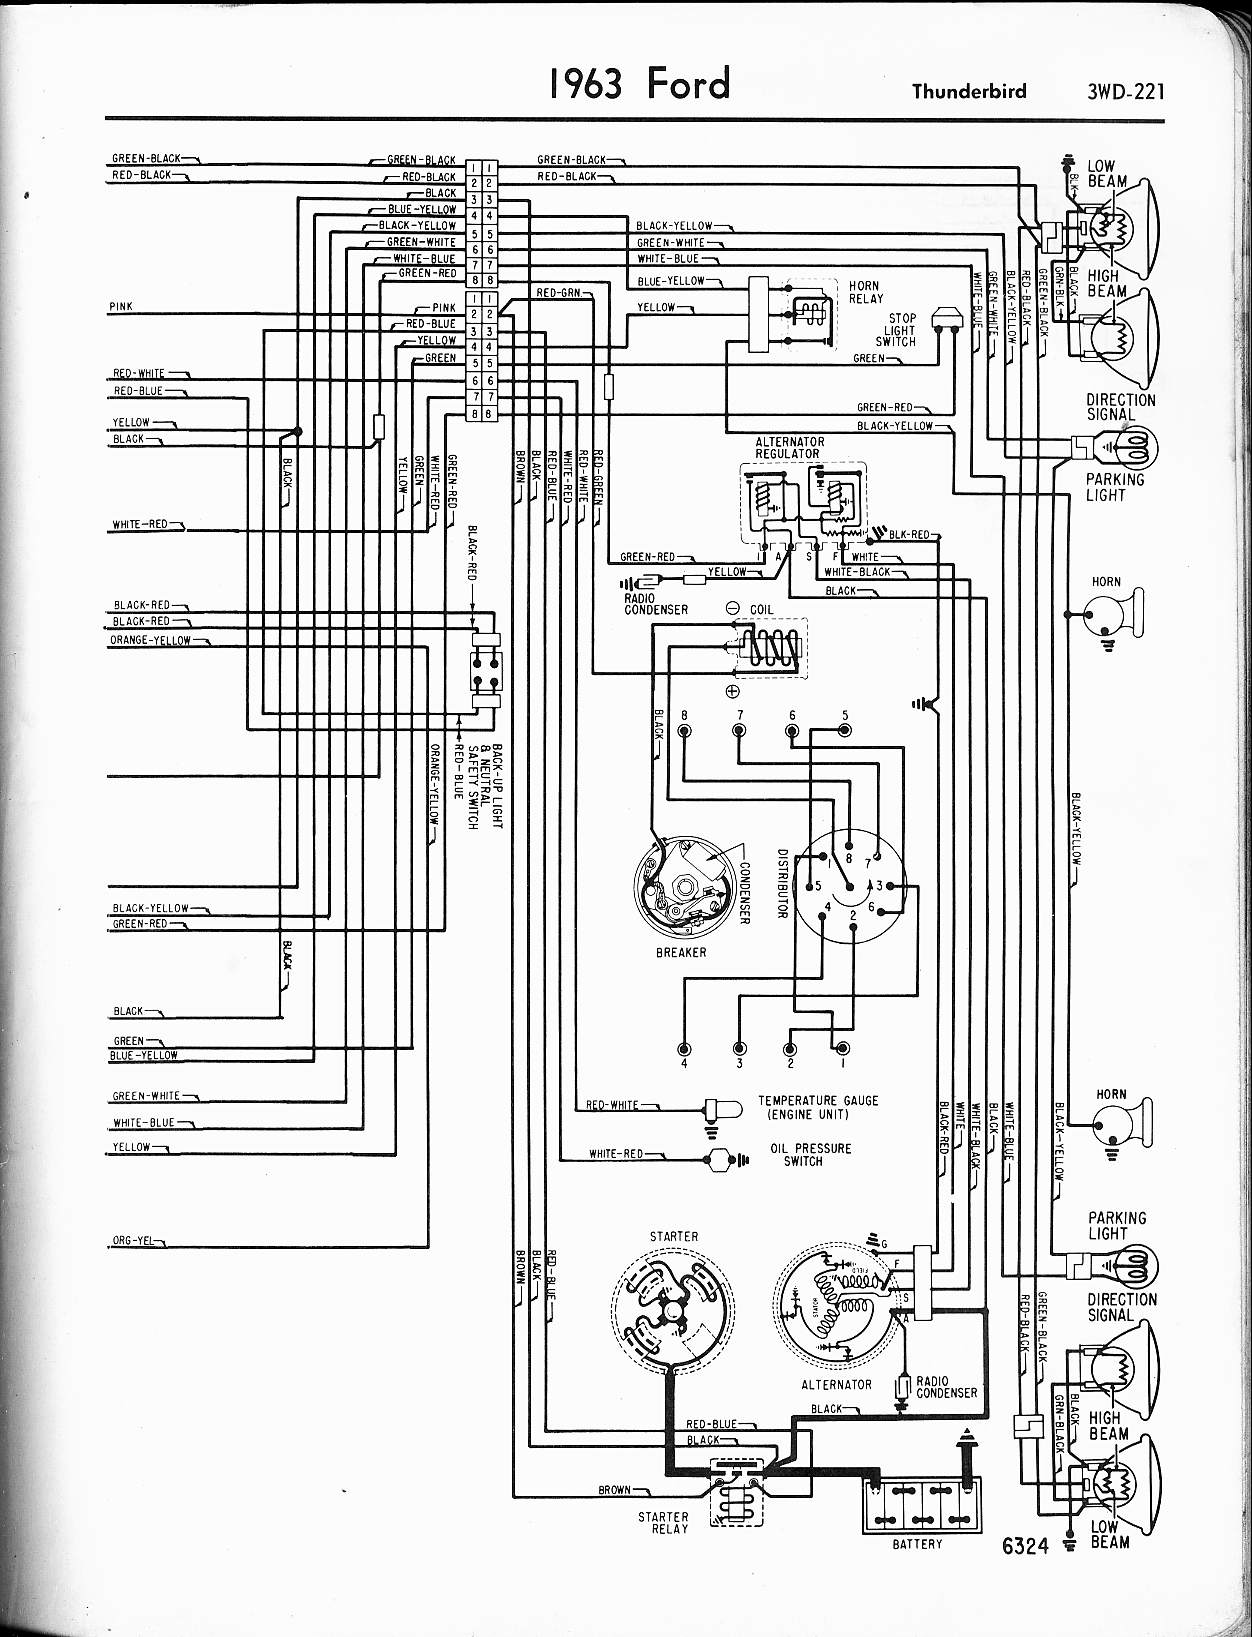 MWire5765 221 57 65 ford wiring diagrams 1963 mercury comet wiring diagram at soozxer.org